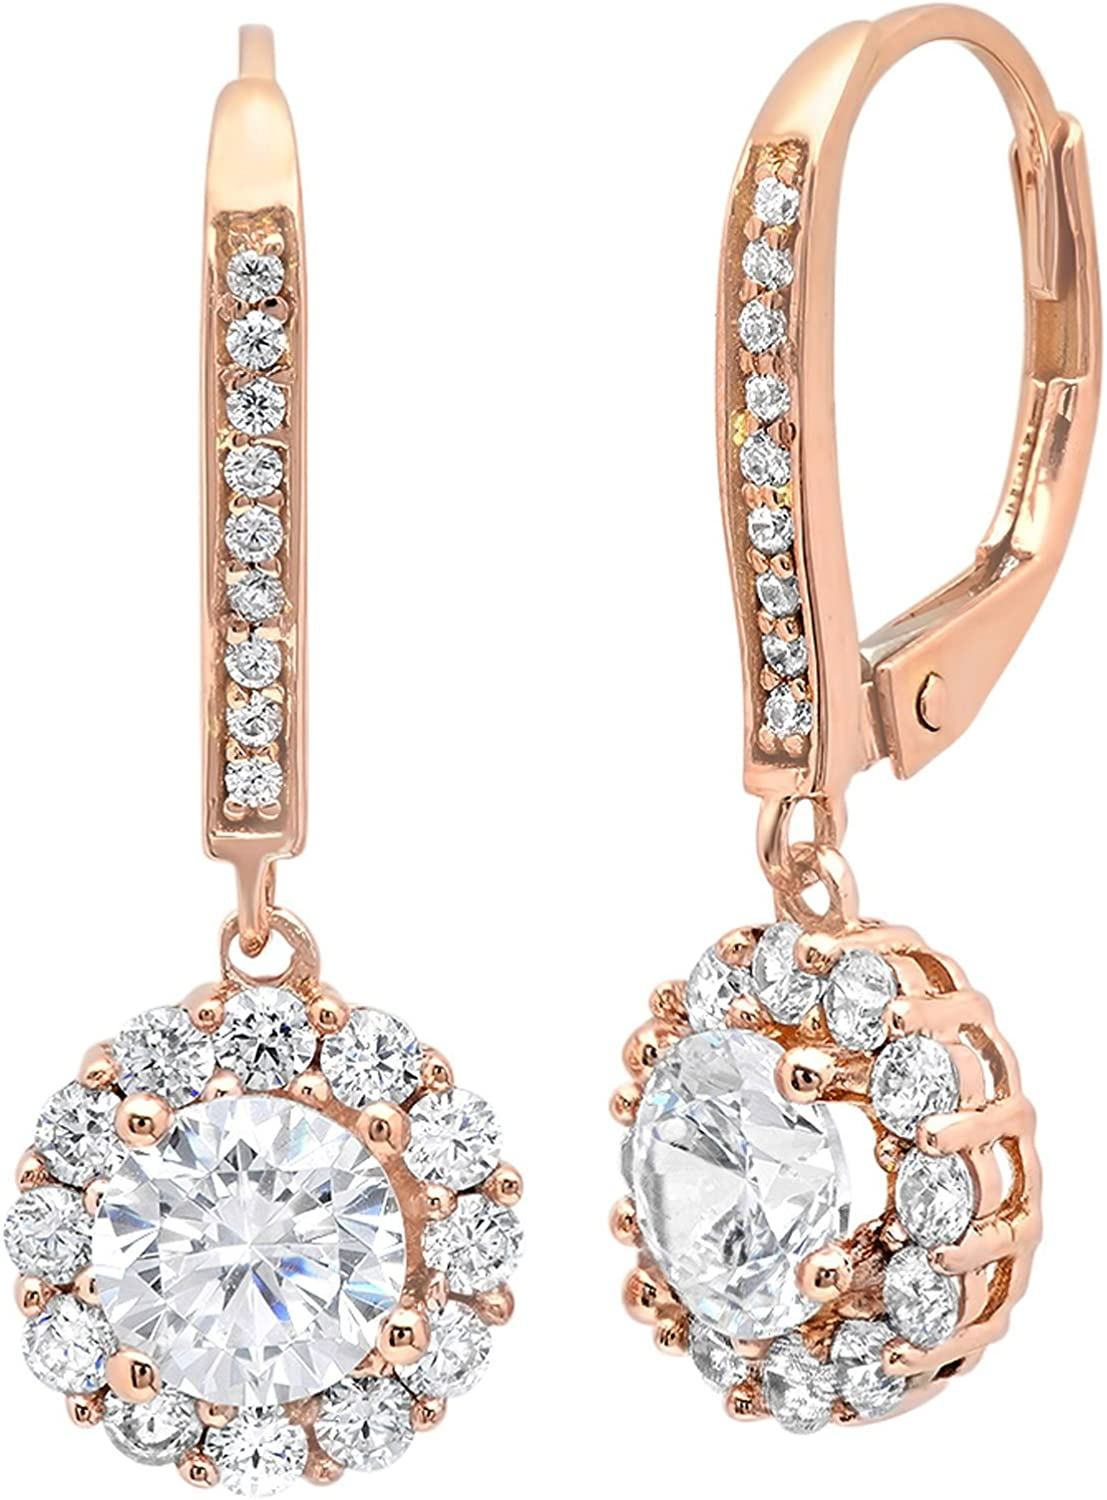 3.55 ct Round Cut ideal VVS1 Conflict Free Gemstone Halo Solitaire Genuine Moissanite Designer Lever back Drop Dangle Earrings Solid 14k rose Gold